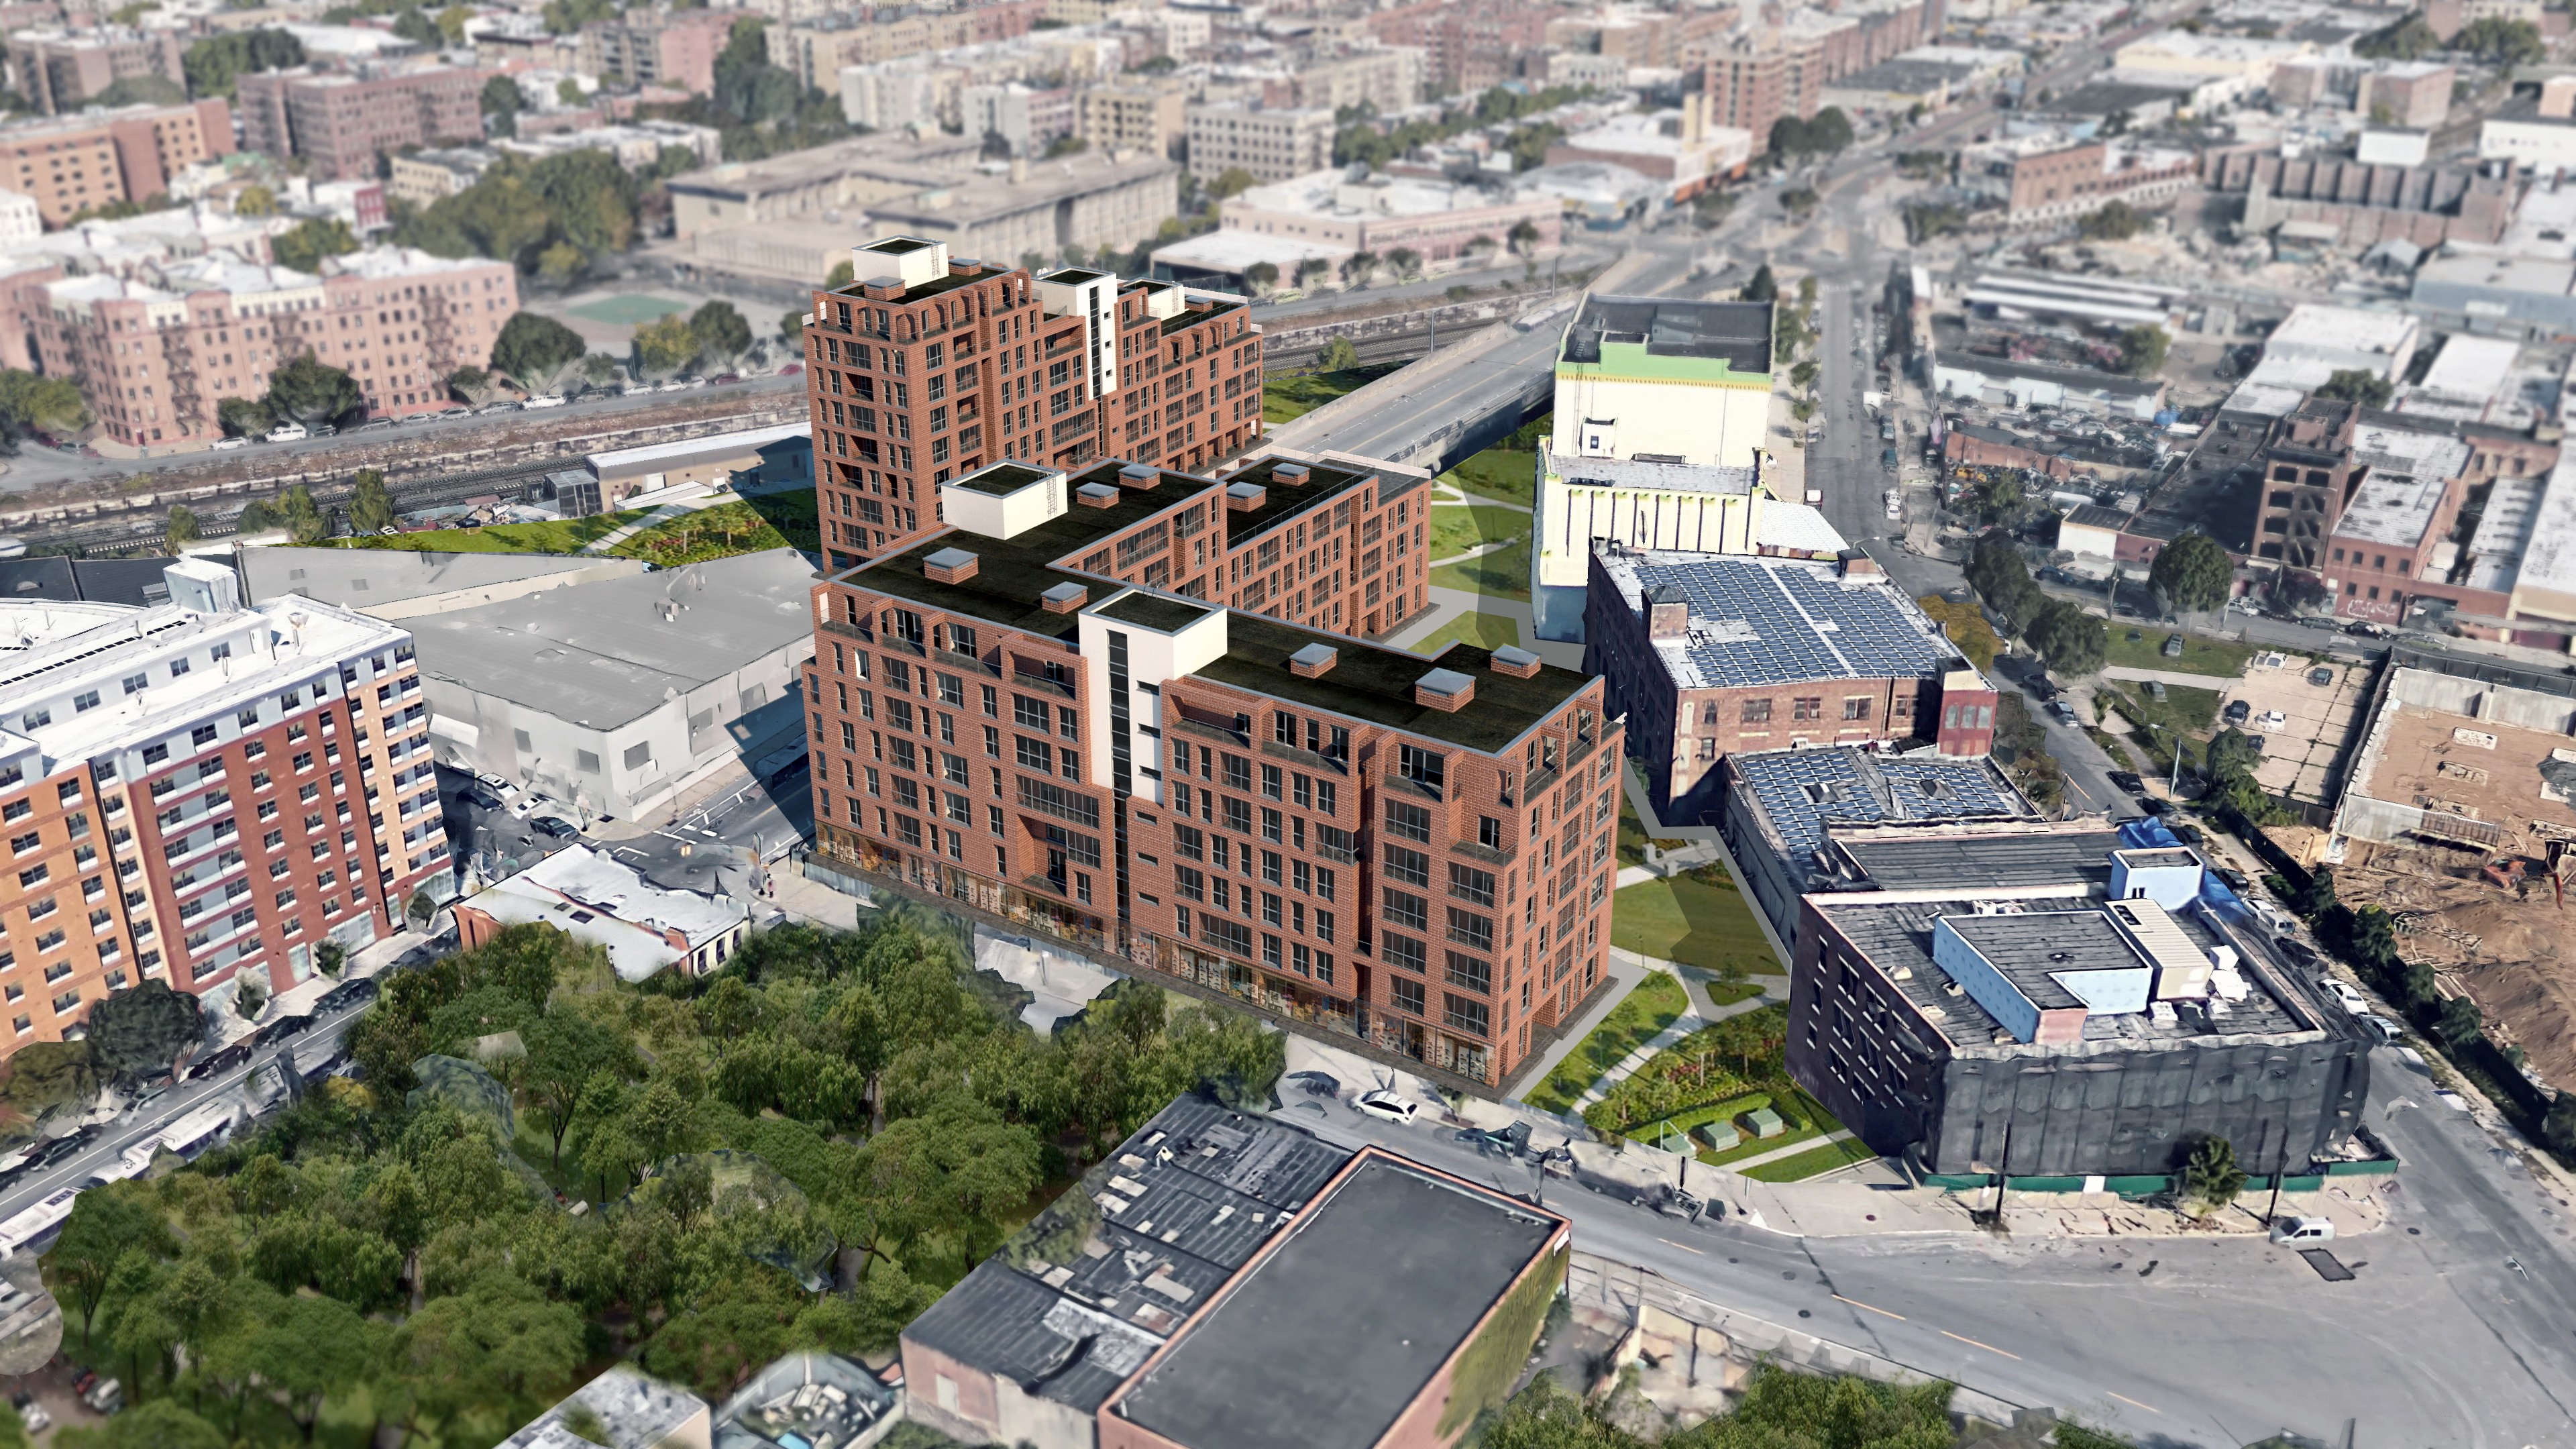 Building housing concepts in the Bronx